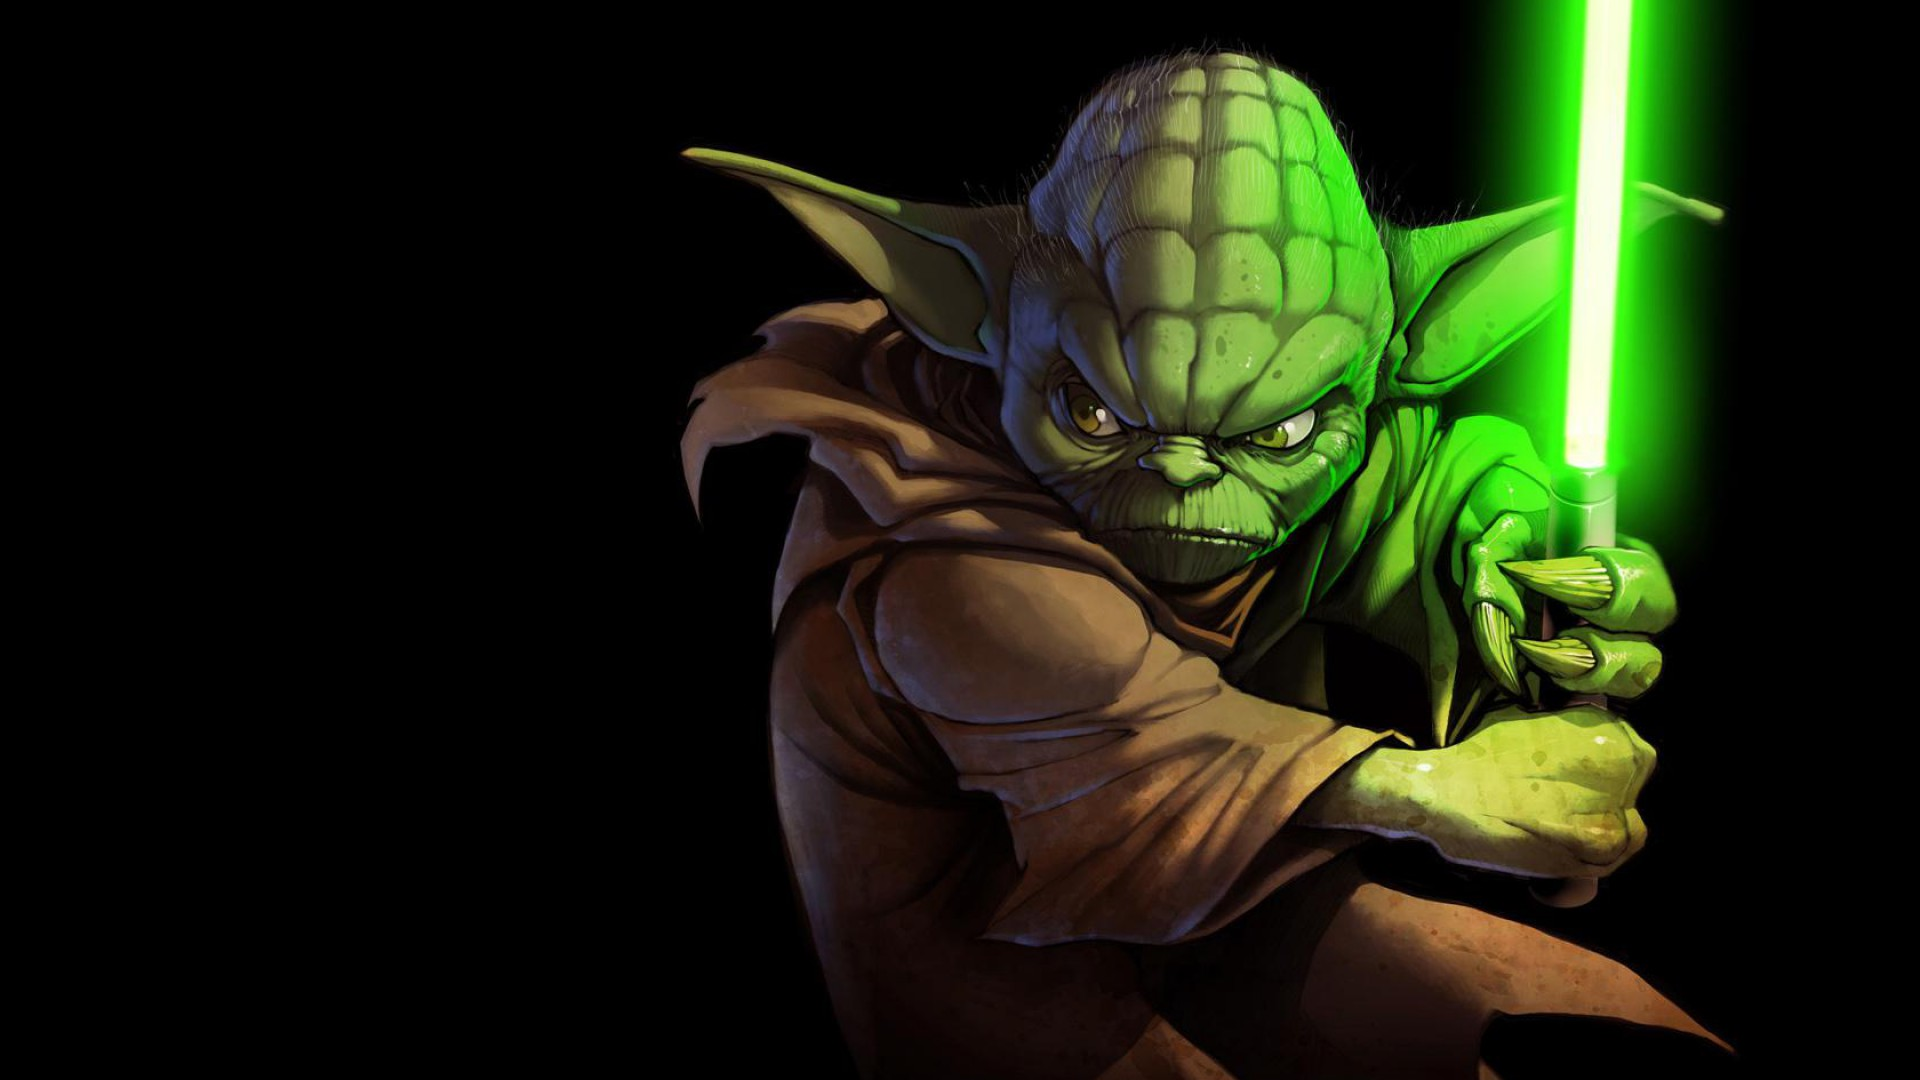 Citaten Yoda : Star wars wallpapers achtergronden id